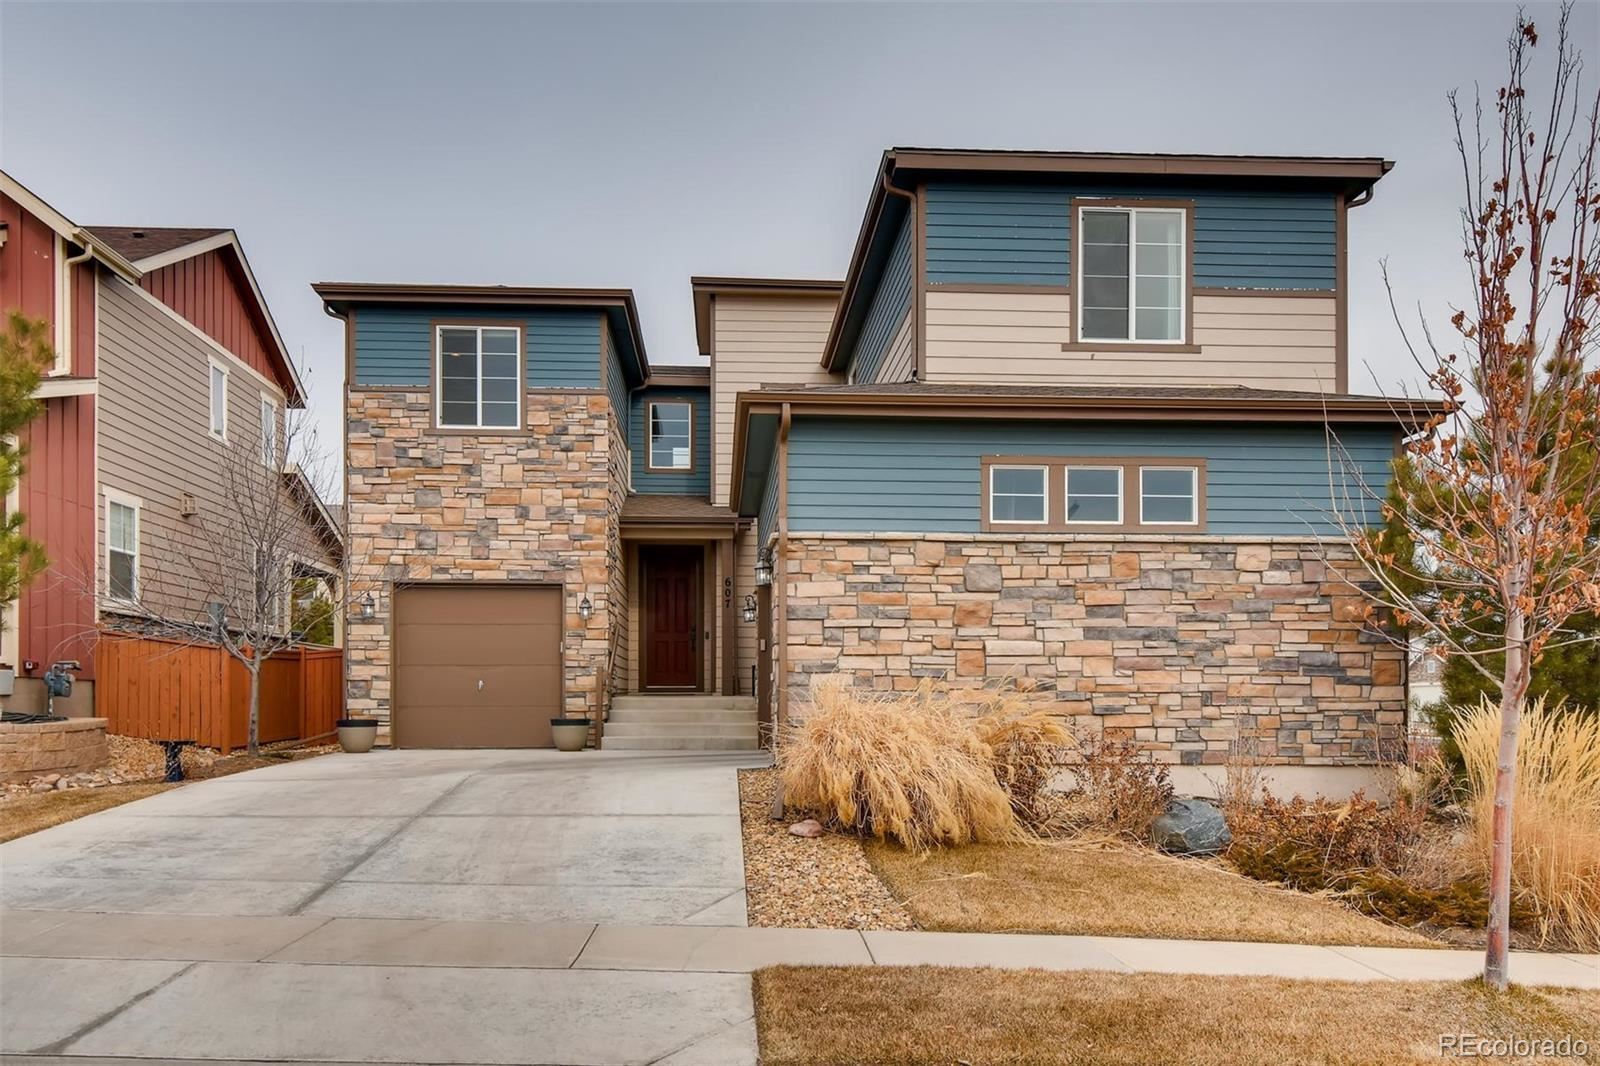 607 W 169th Place, Broomfield, CO 80023 - #: 8228108